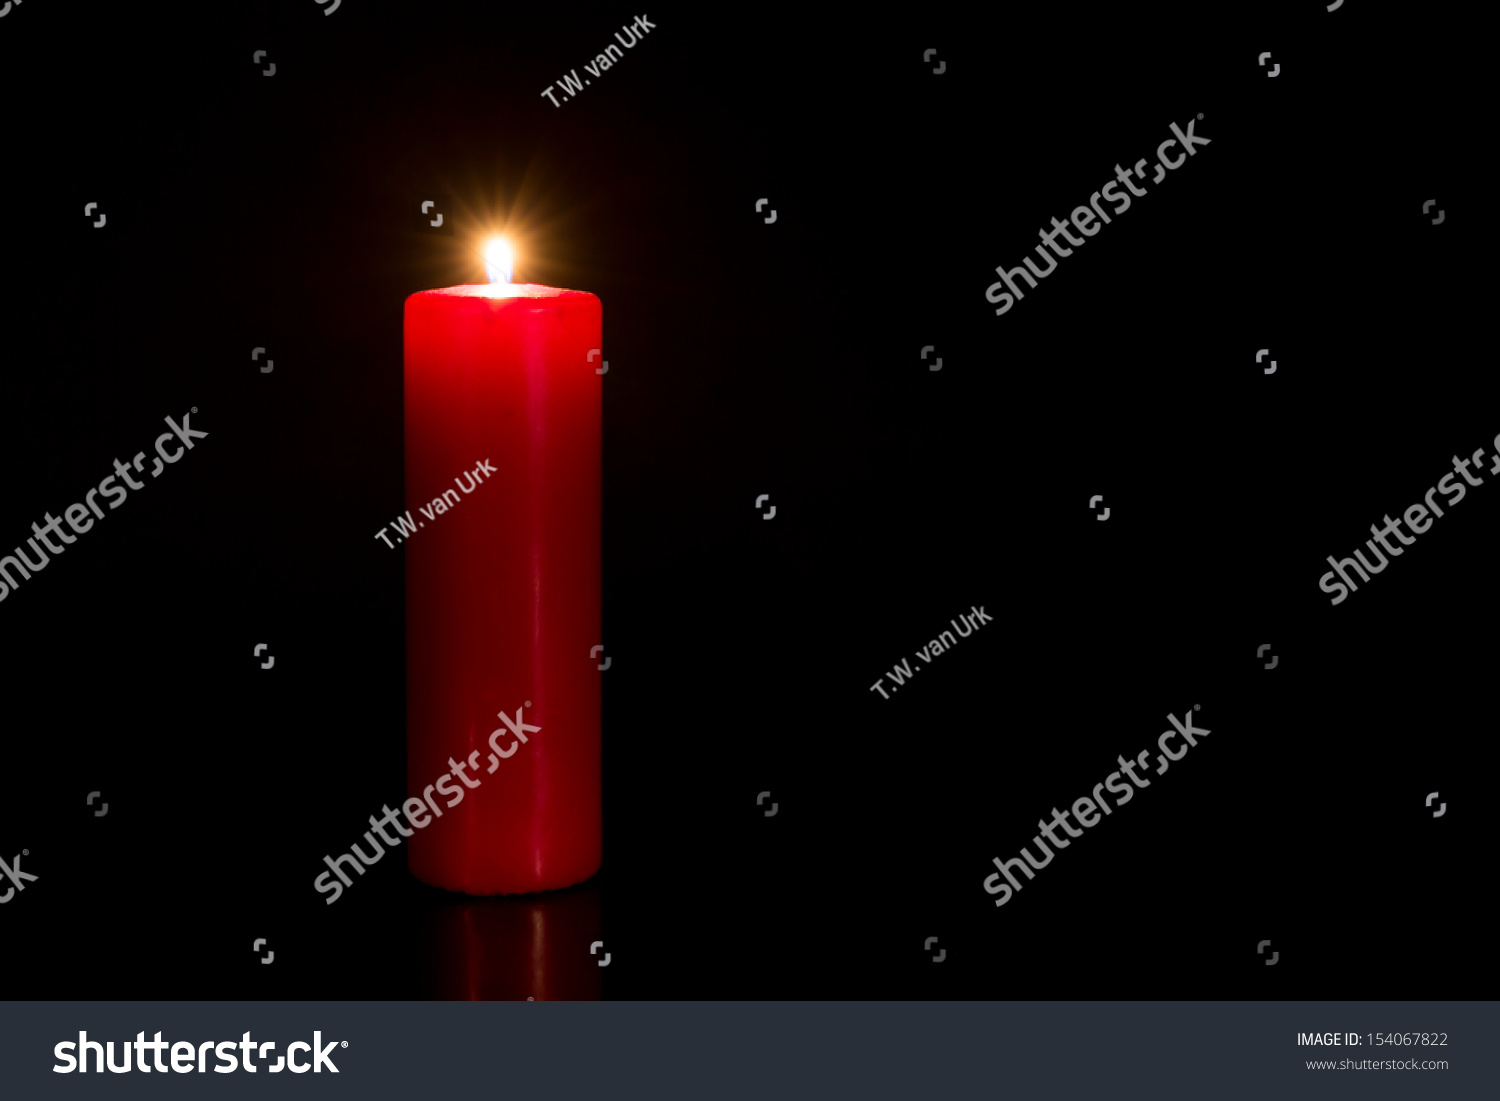 Red Candle With Black Background Stock Photo 154067822 ...